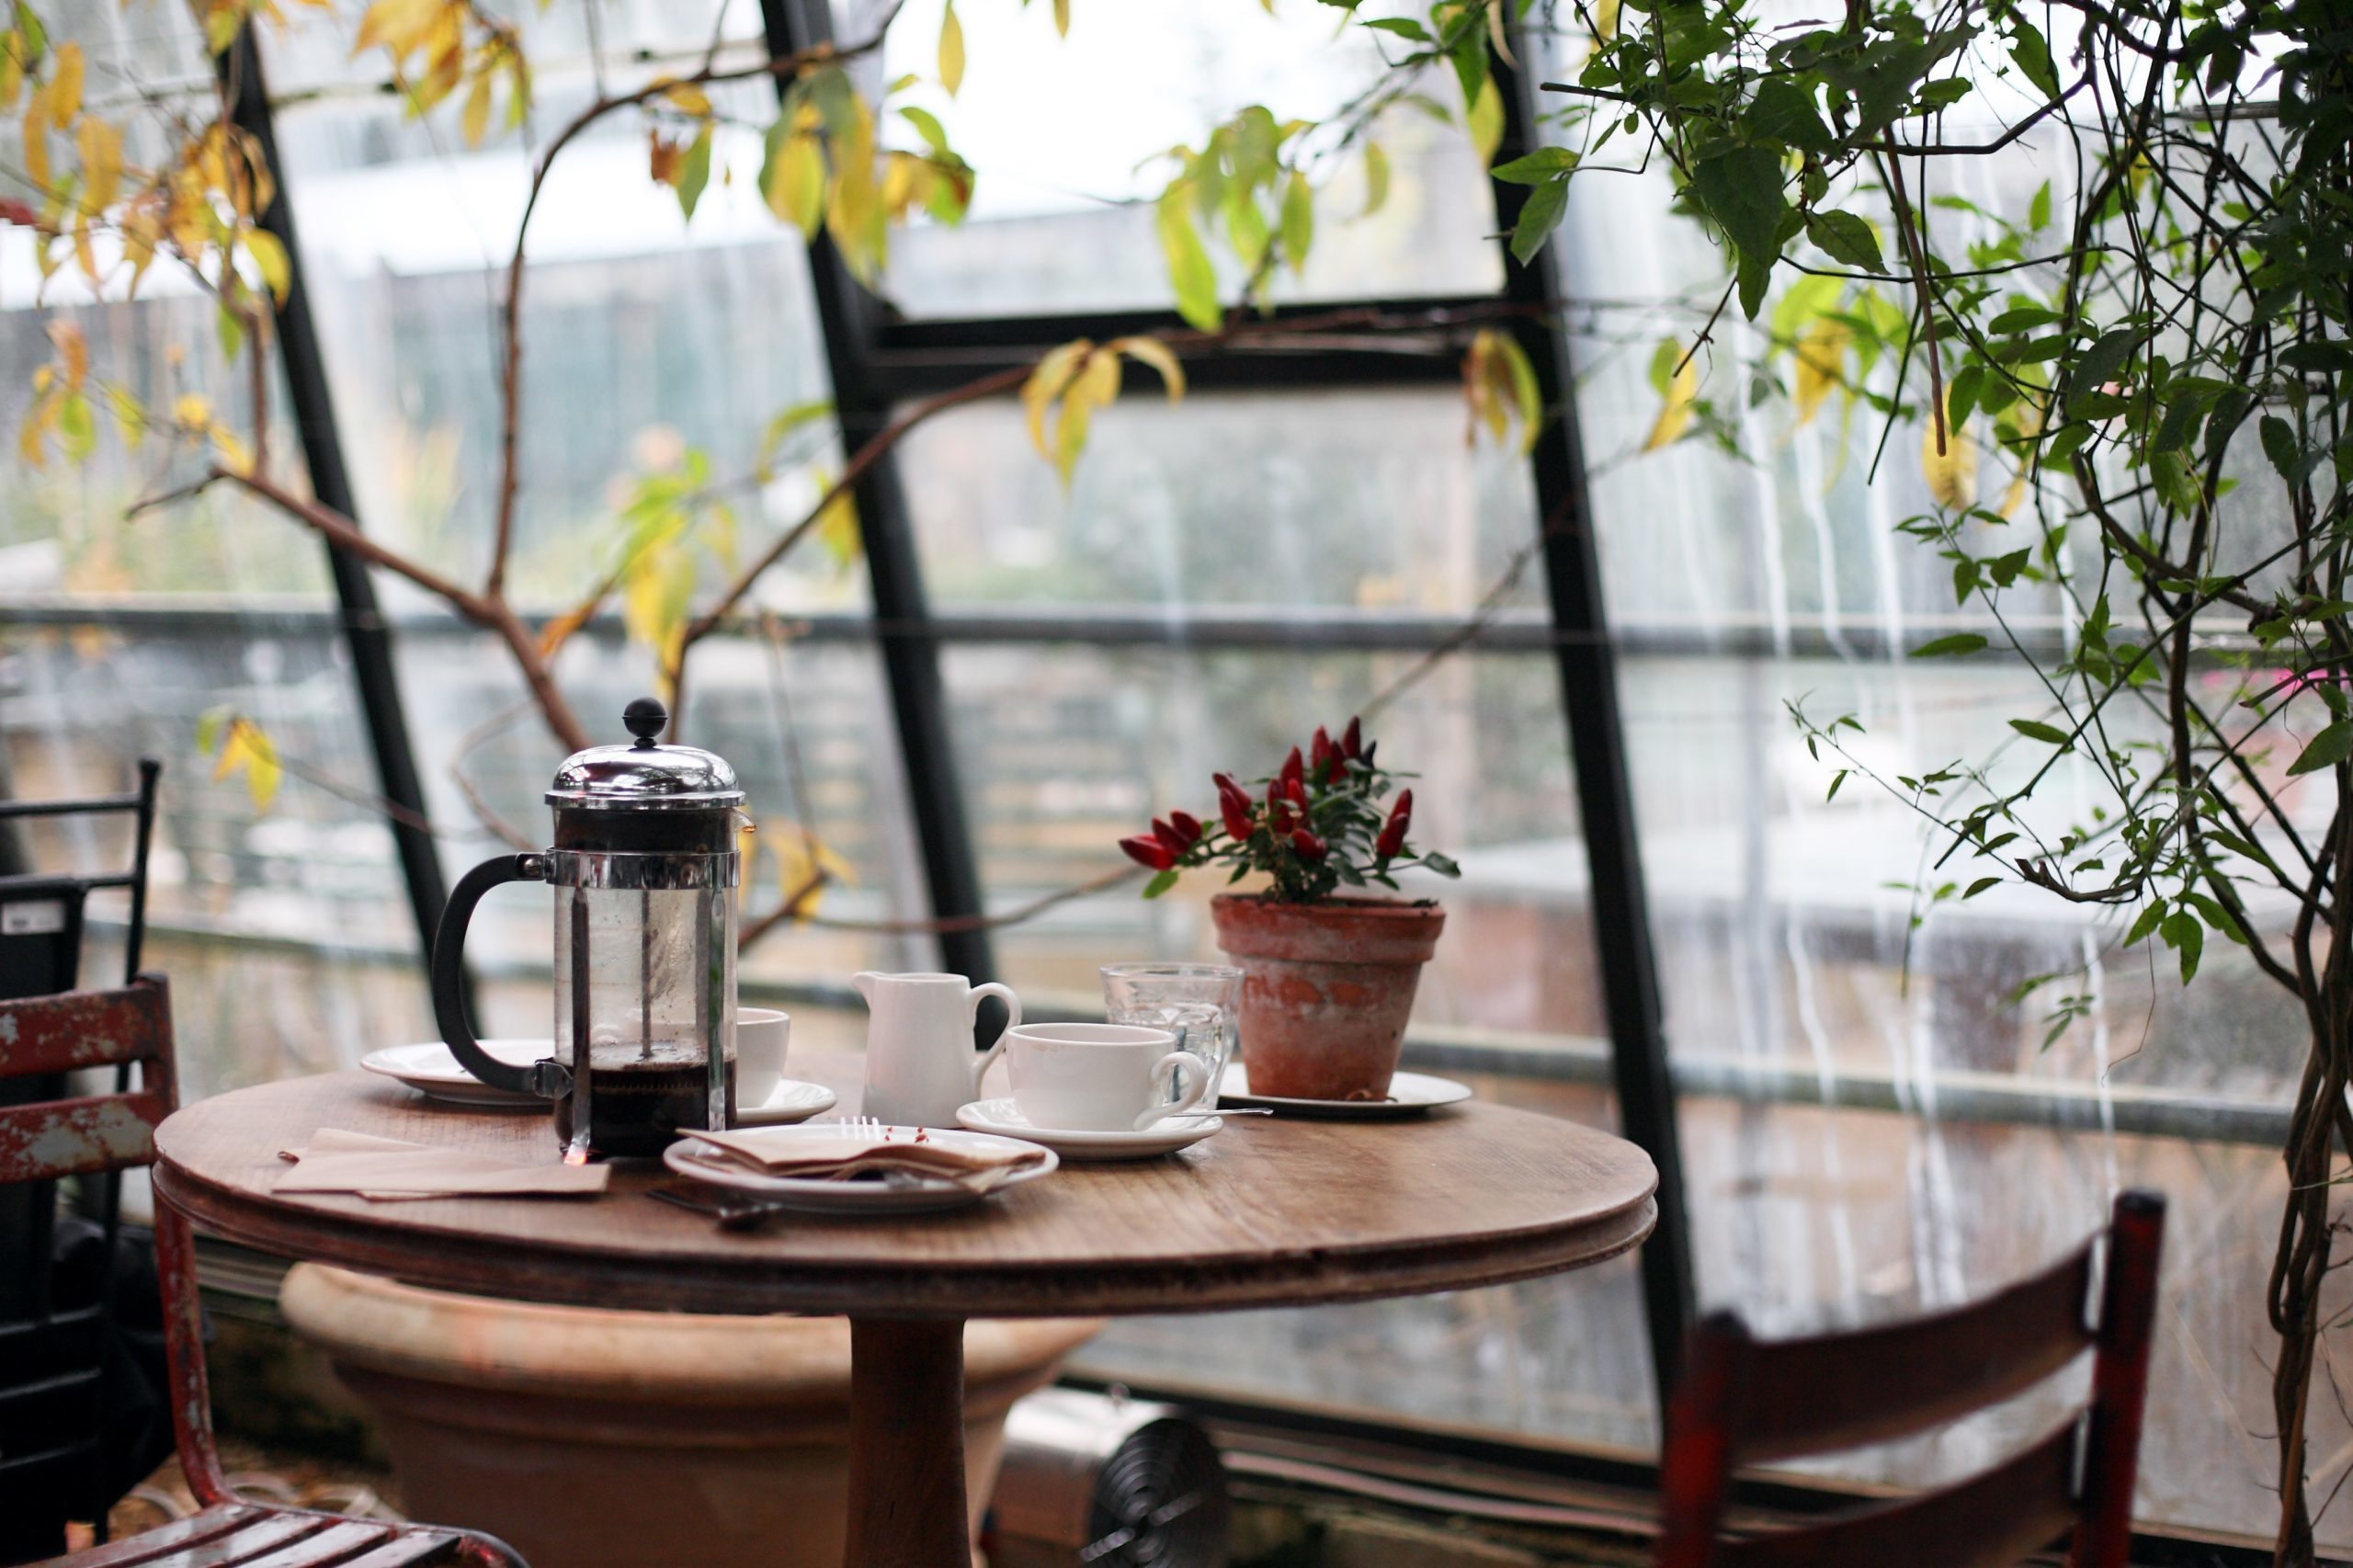 questions about French press Coffee by beginners